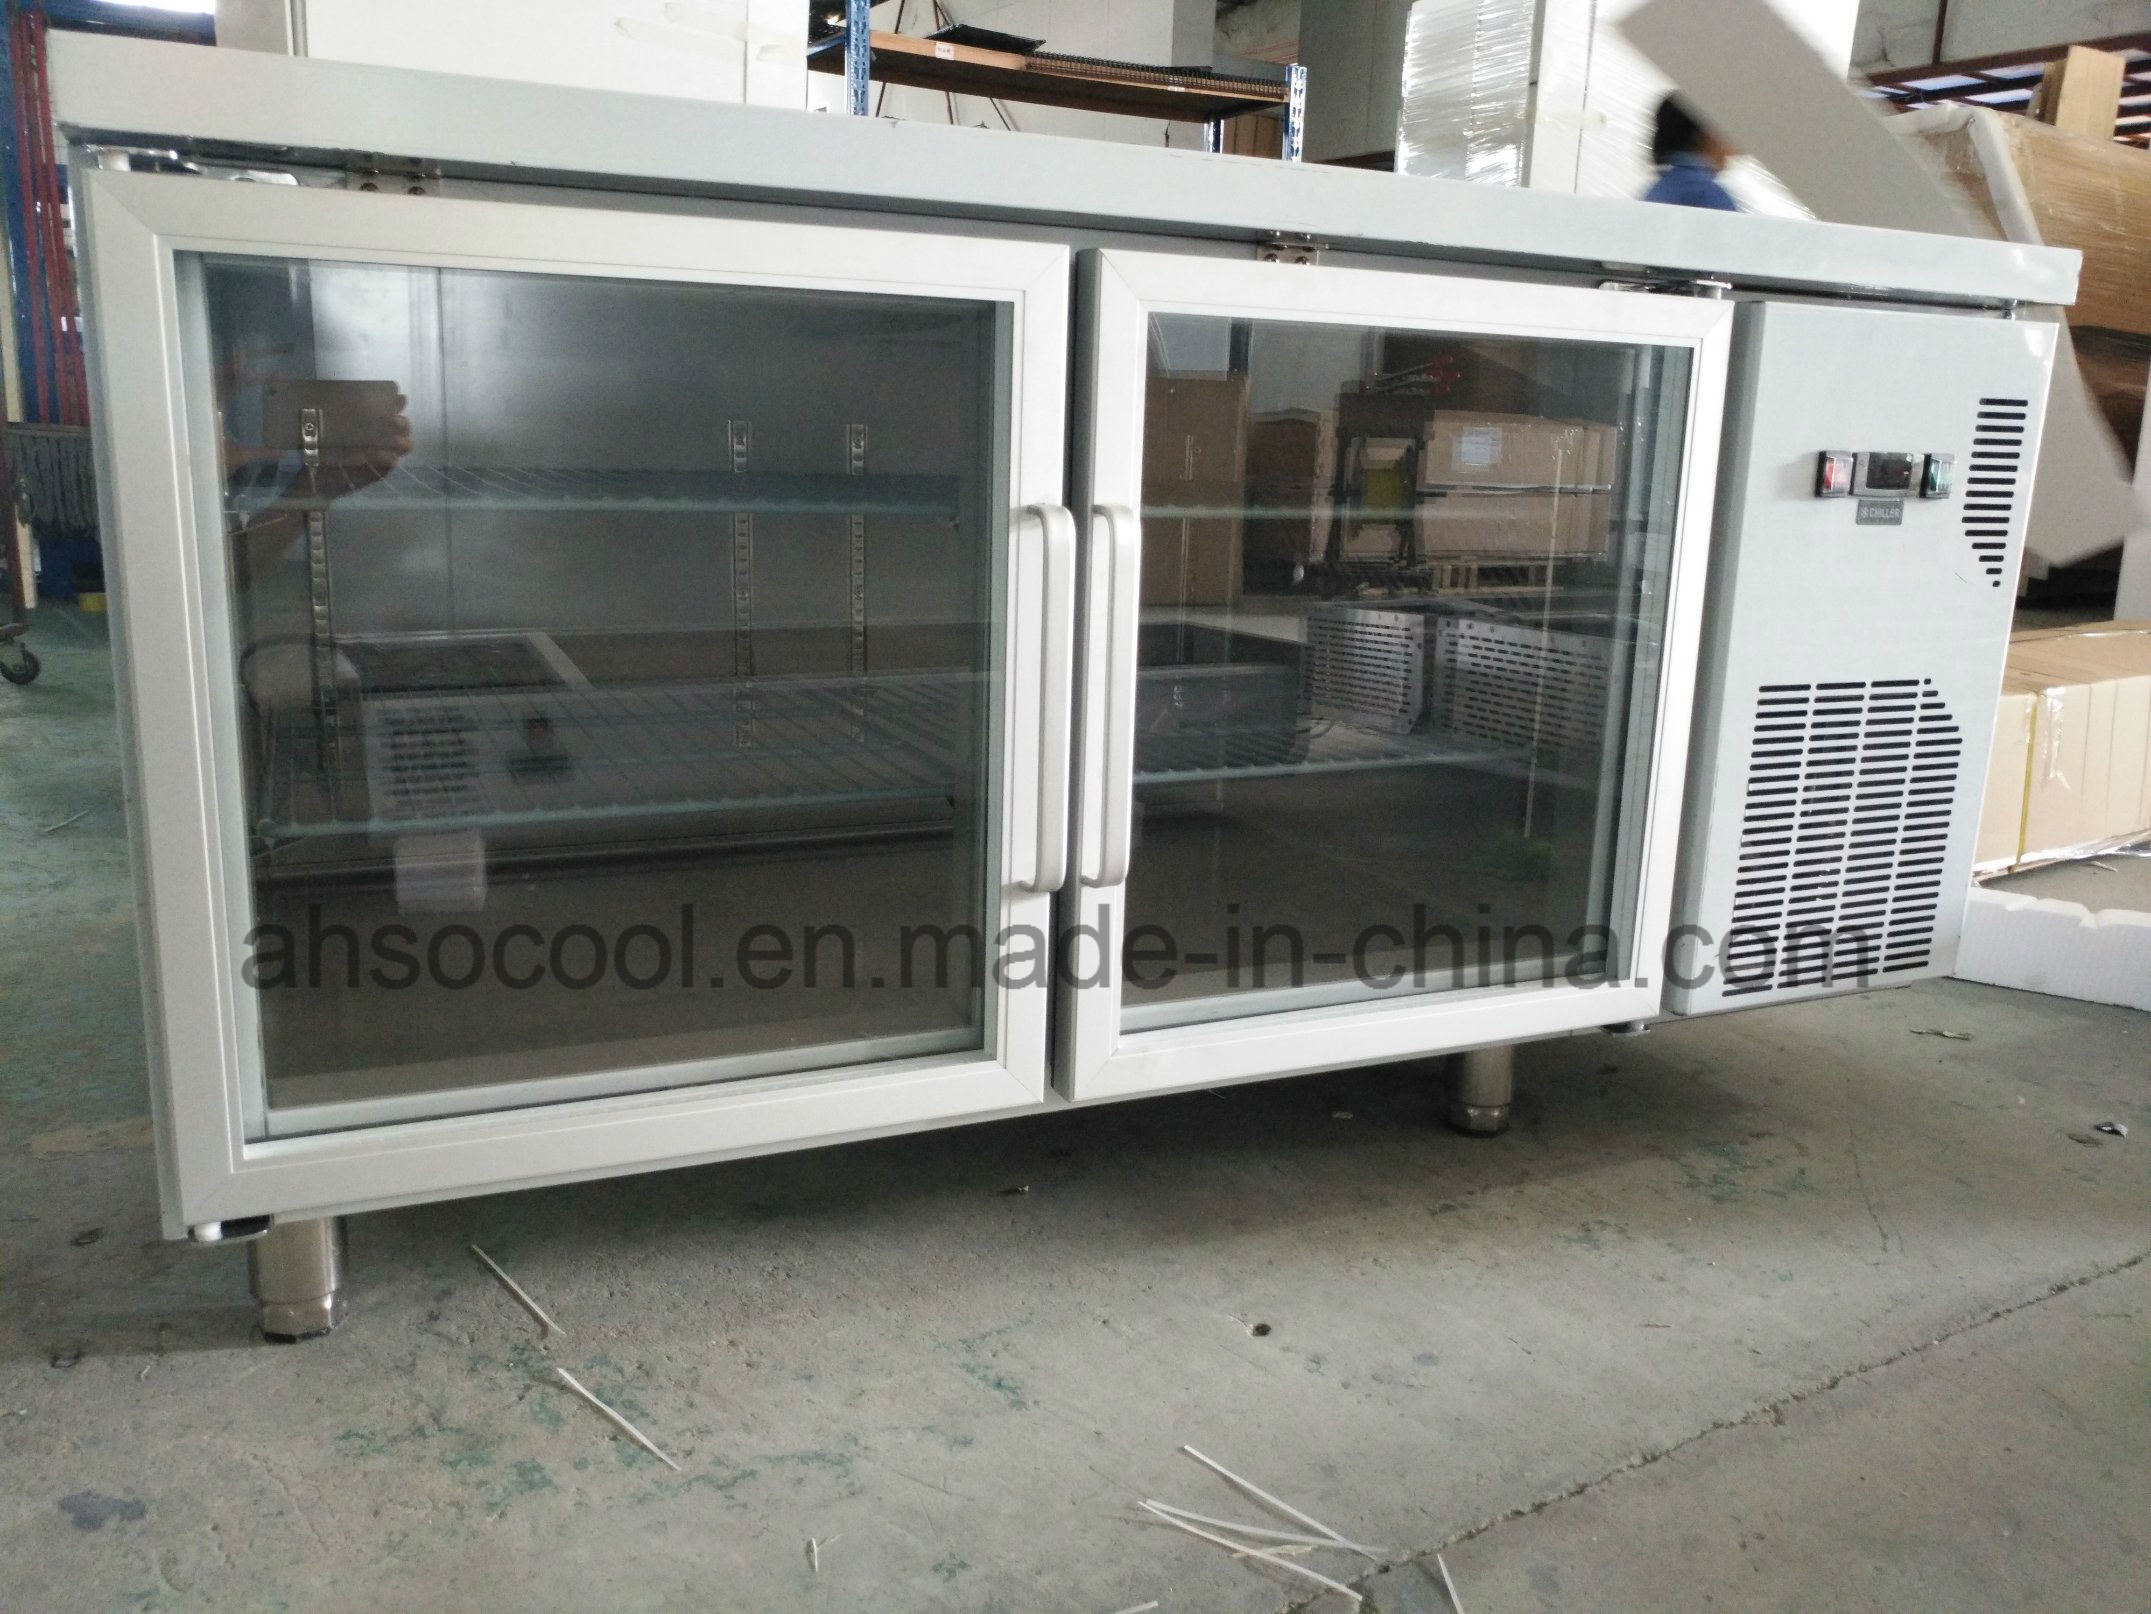 Glass Door Kitchen Counter Refrigerator Sus304 Body And Embraco Compressor